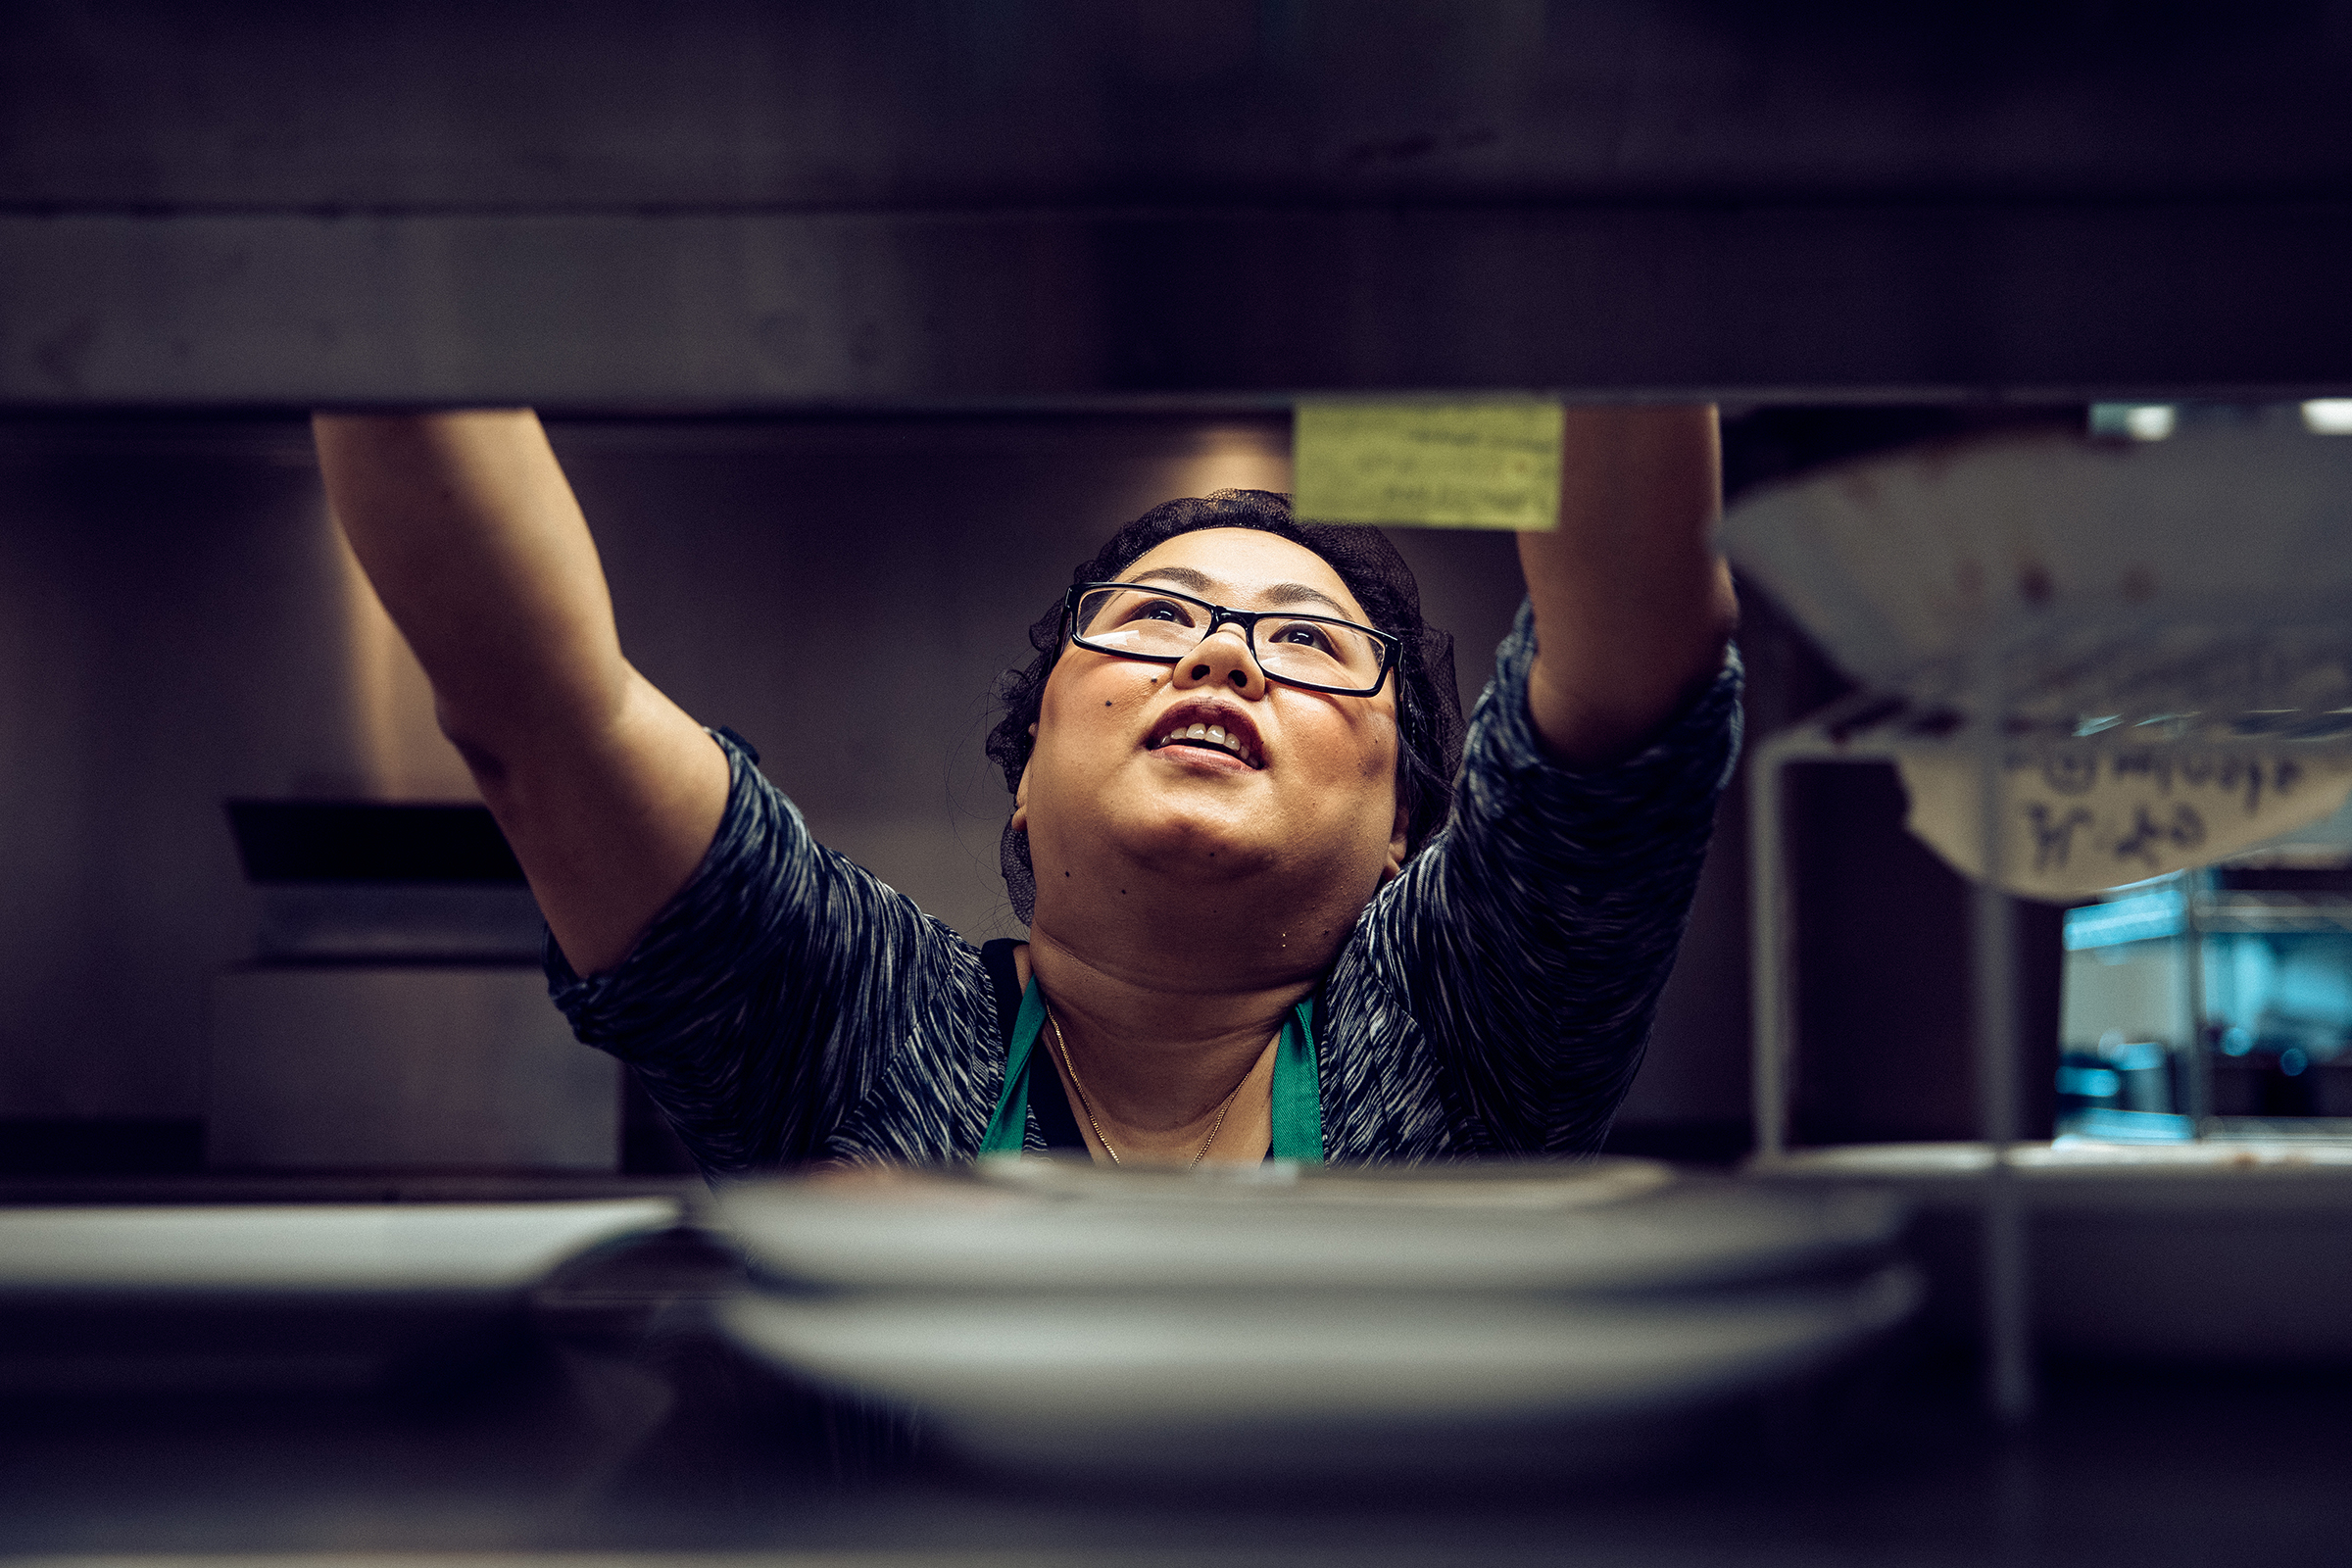 A woman reaching to grab an ingredient on the top shelf in the kitchen at the Shwe Mandalay Burmese Cuisine restaurant in Battle Creek, Michigan.